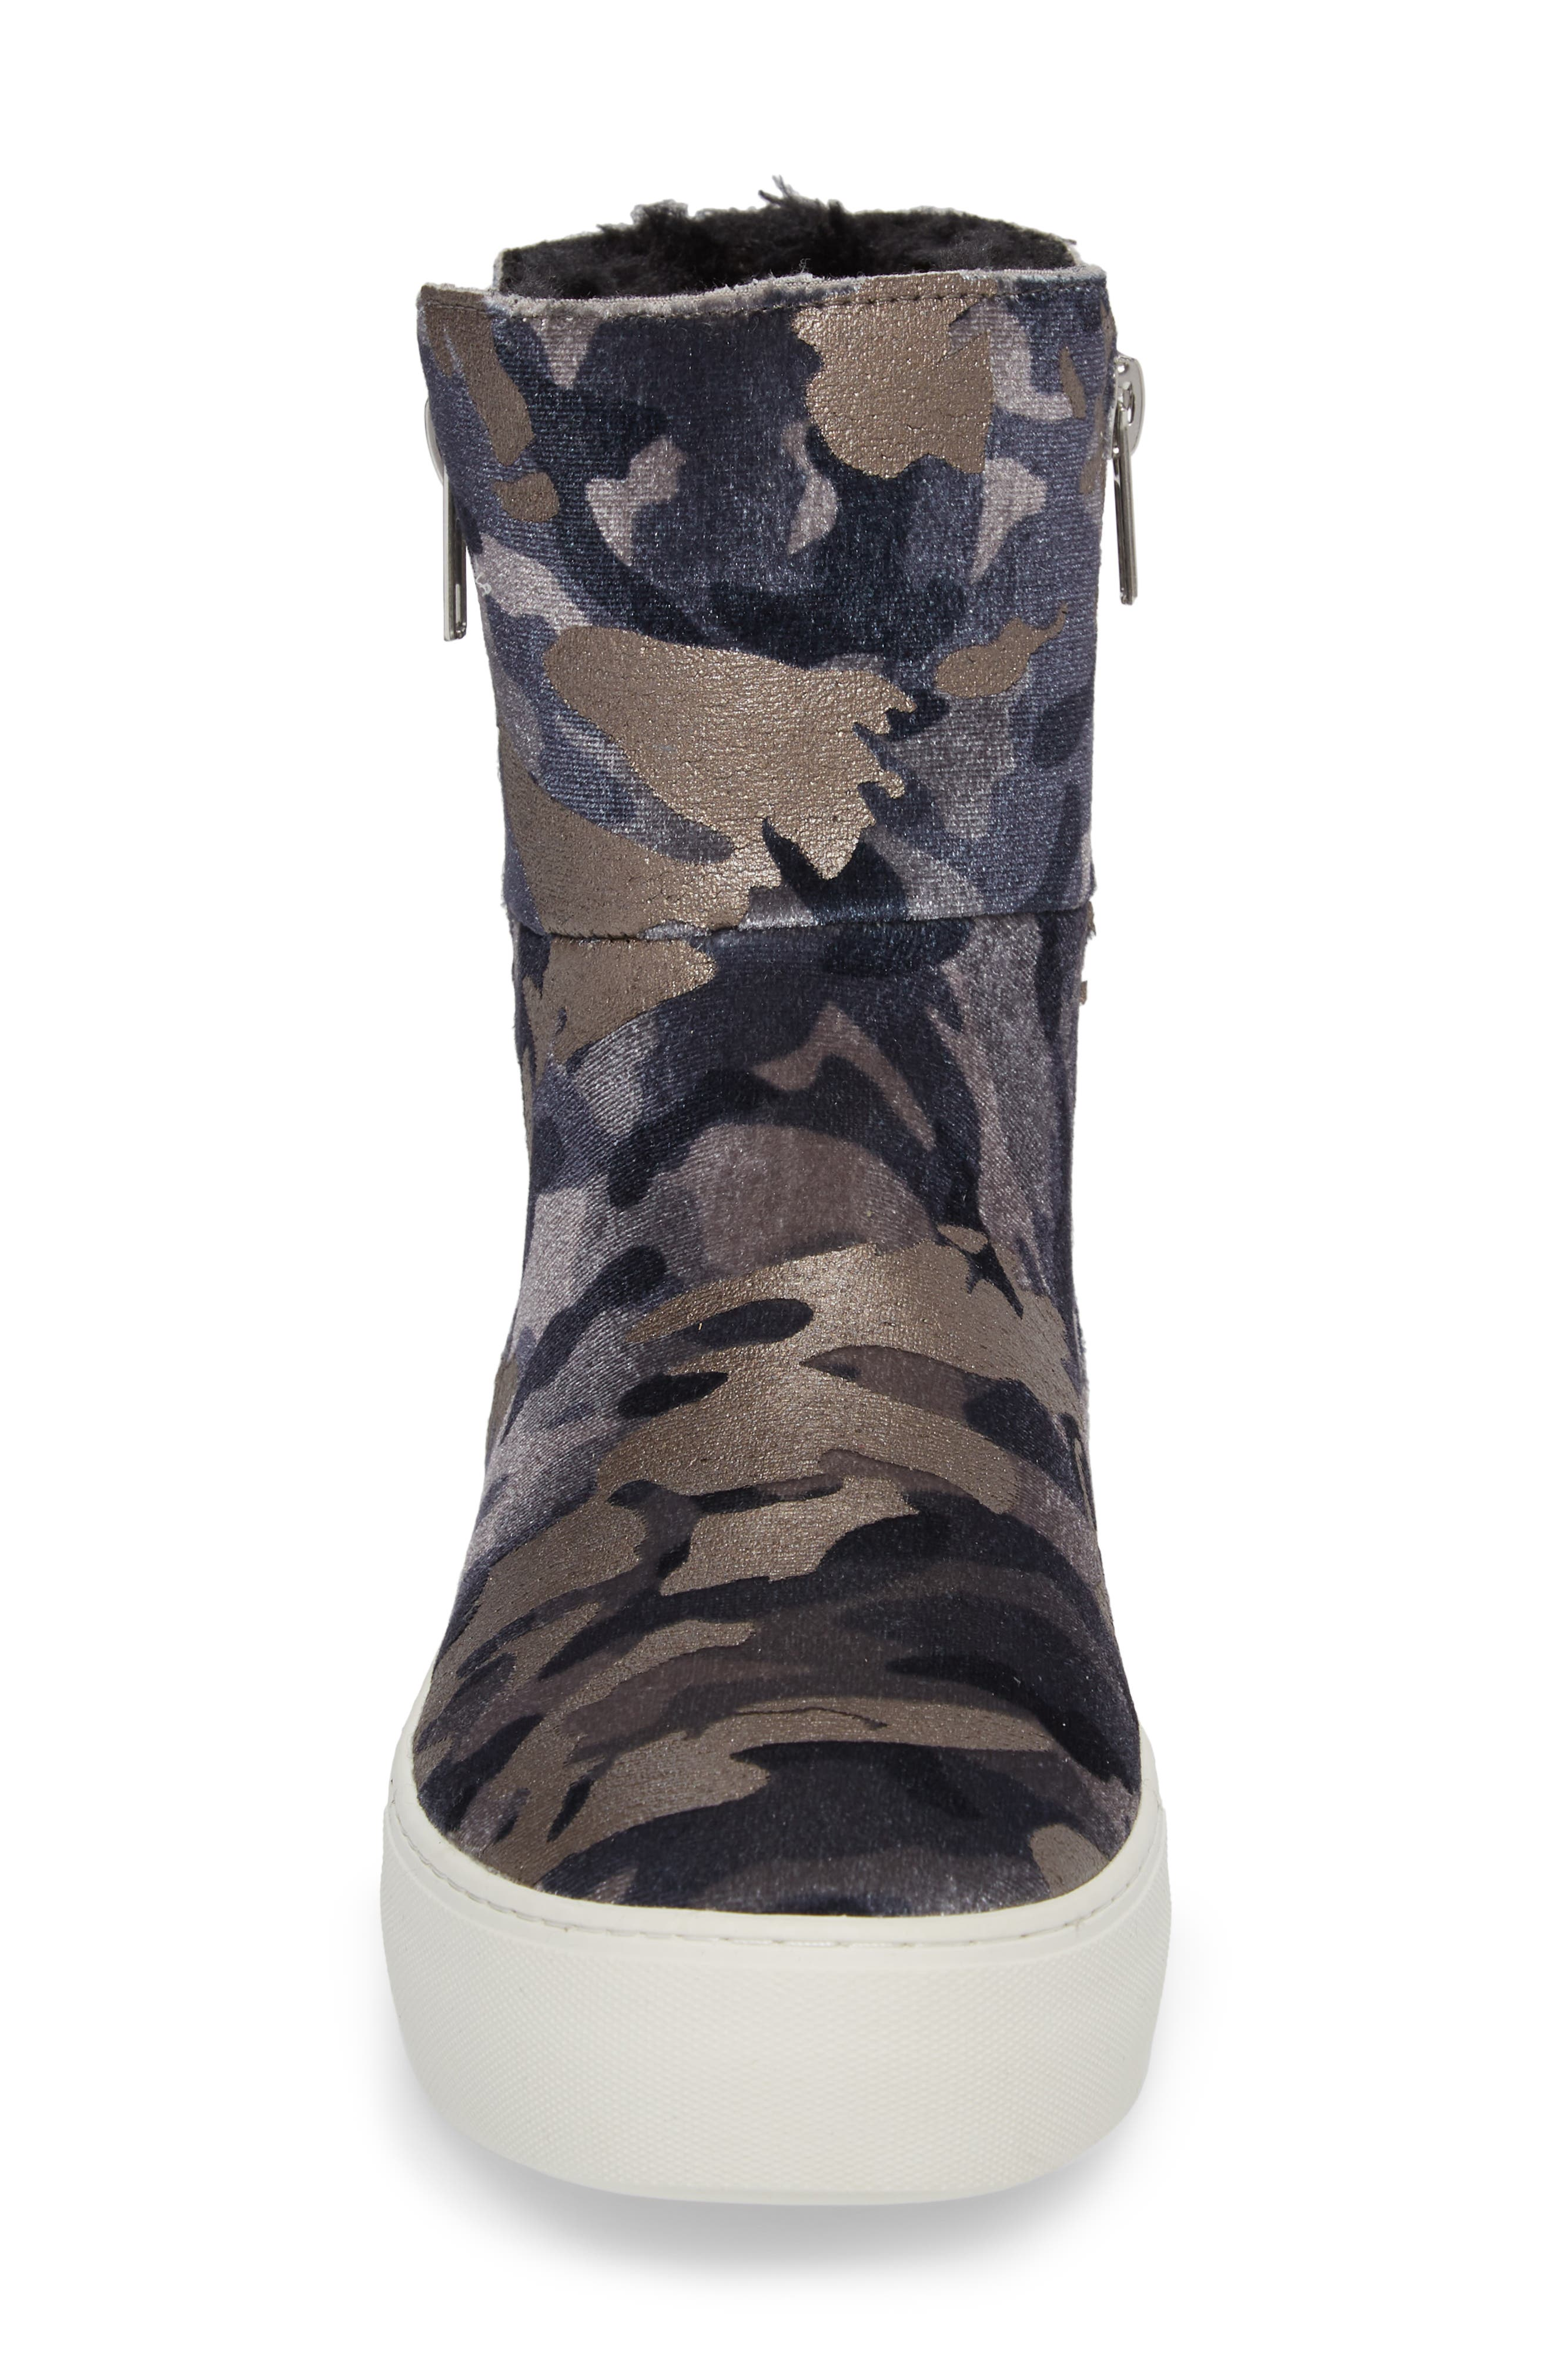 Garrson Sneaker Boot,                             Alternate thumbnail 4, color,                             Camouflage